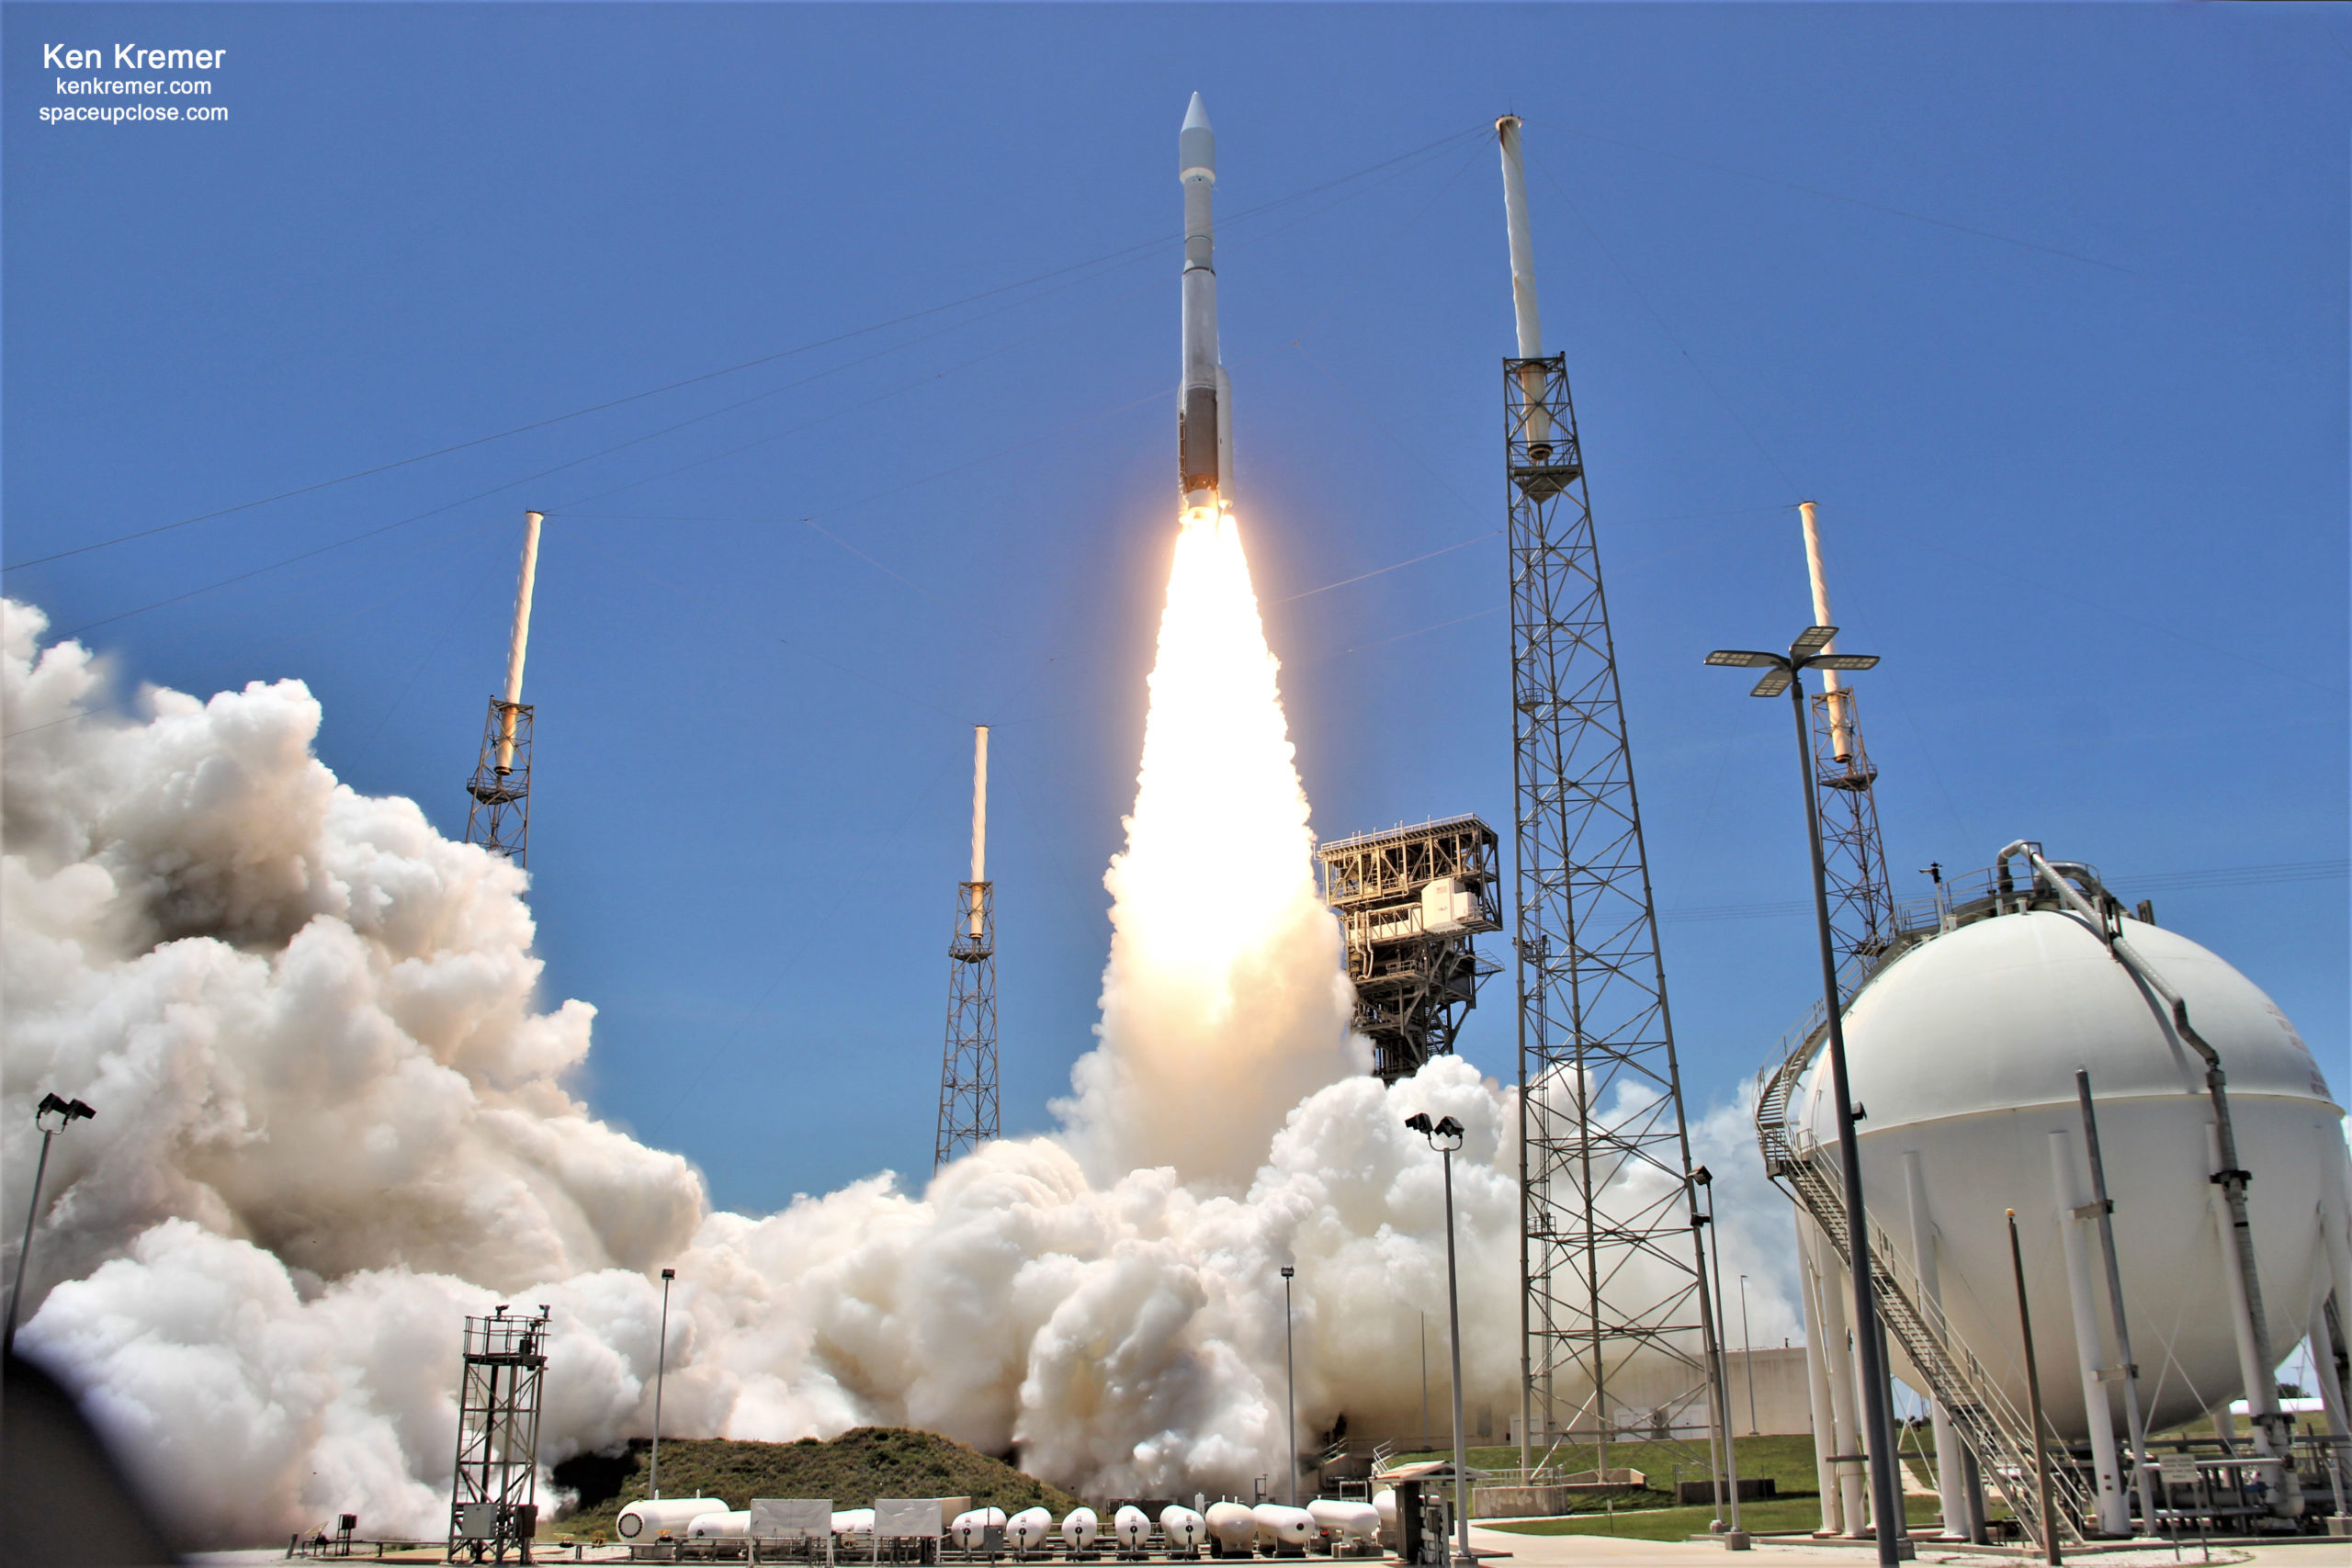 ULA Atlas V Dazzles Delivering Cyber-Hardened SBIRS GEO-5 Infrared Heat Detecting Missile Warning Satellite to Orbit for U.S. Space Force: Photos